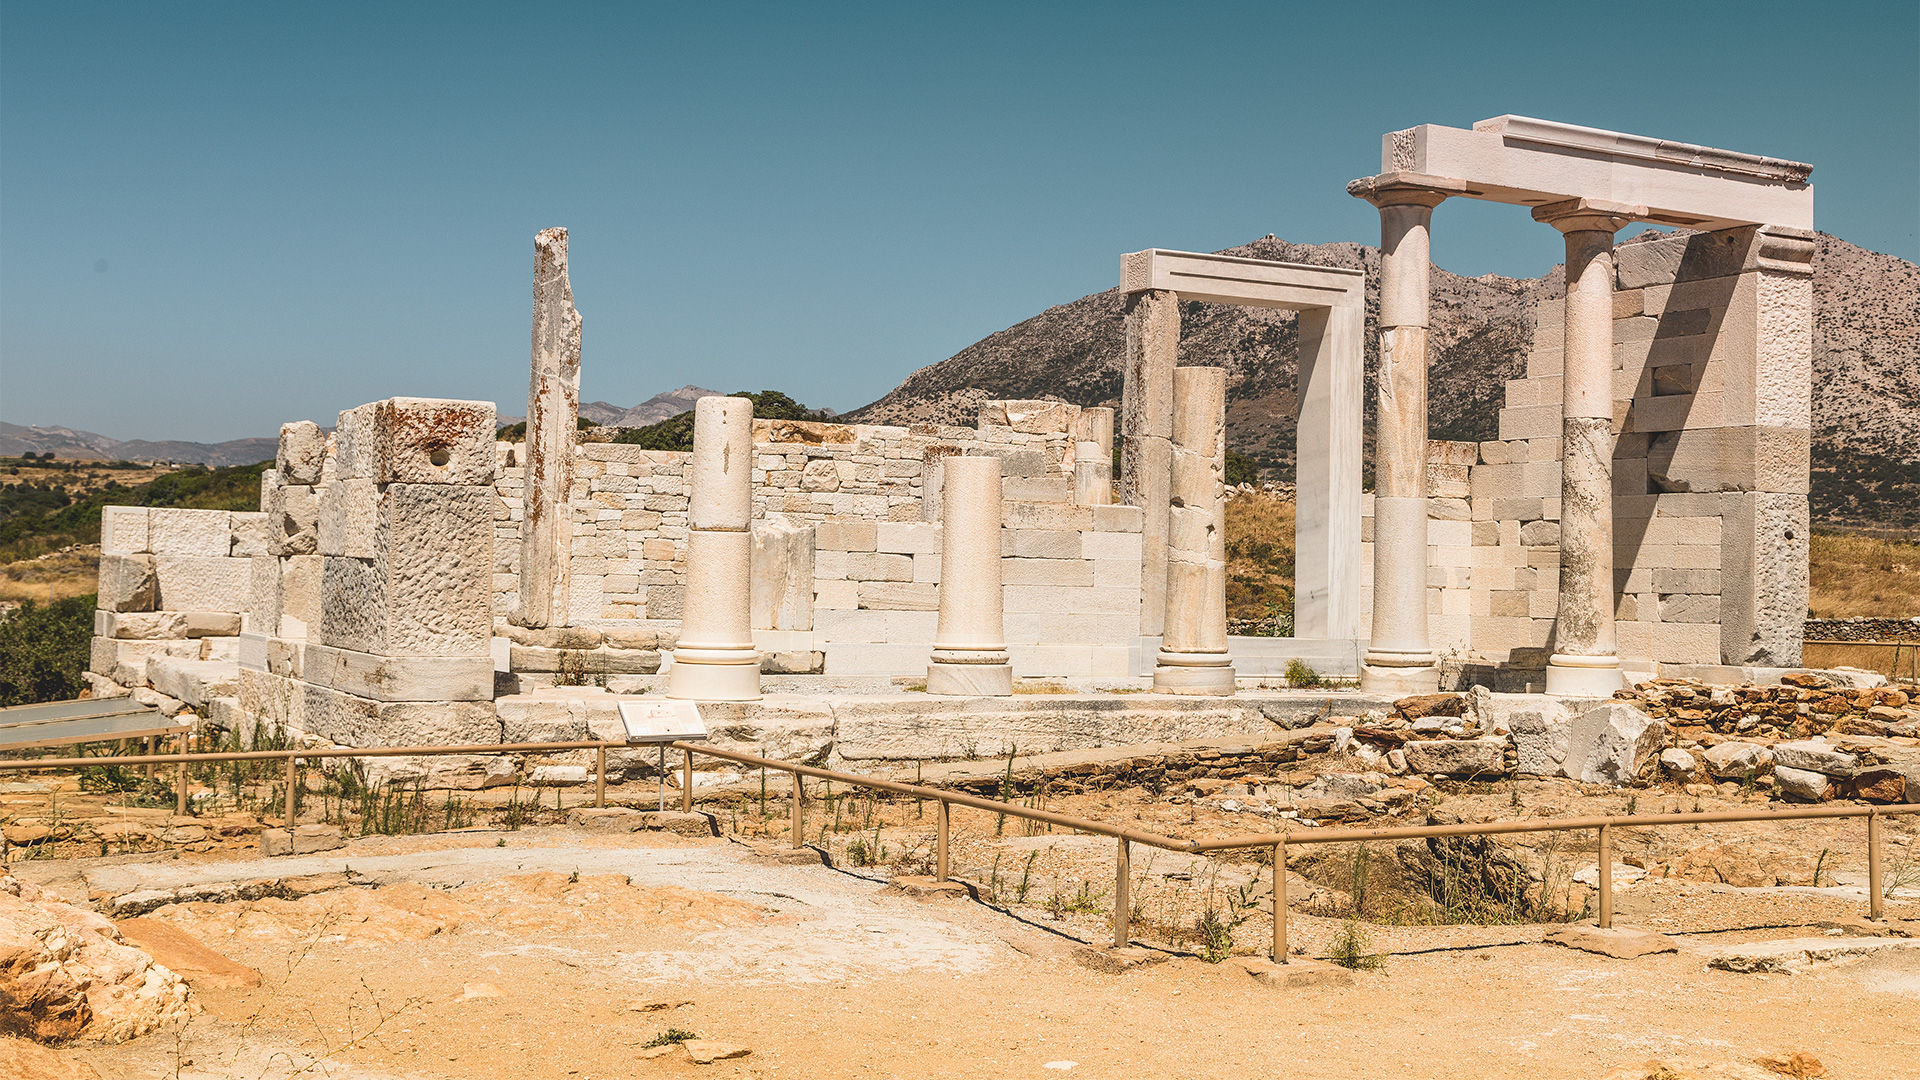 Τhe Temple of Demeter, the 6th-century BC sanctuary dedicated to the goddess of harvest and fertility